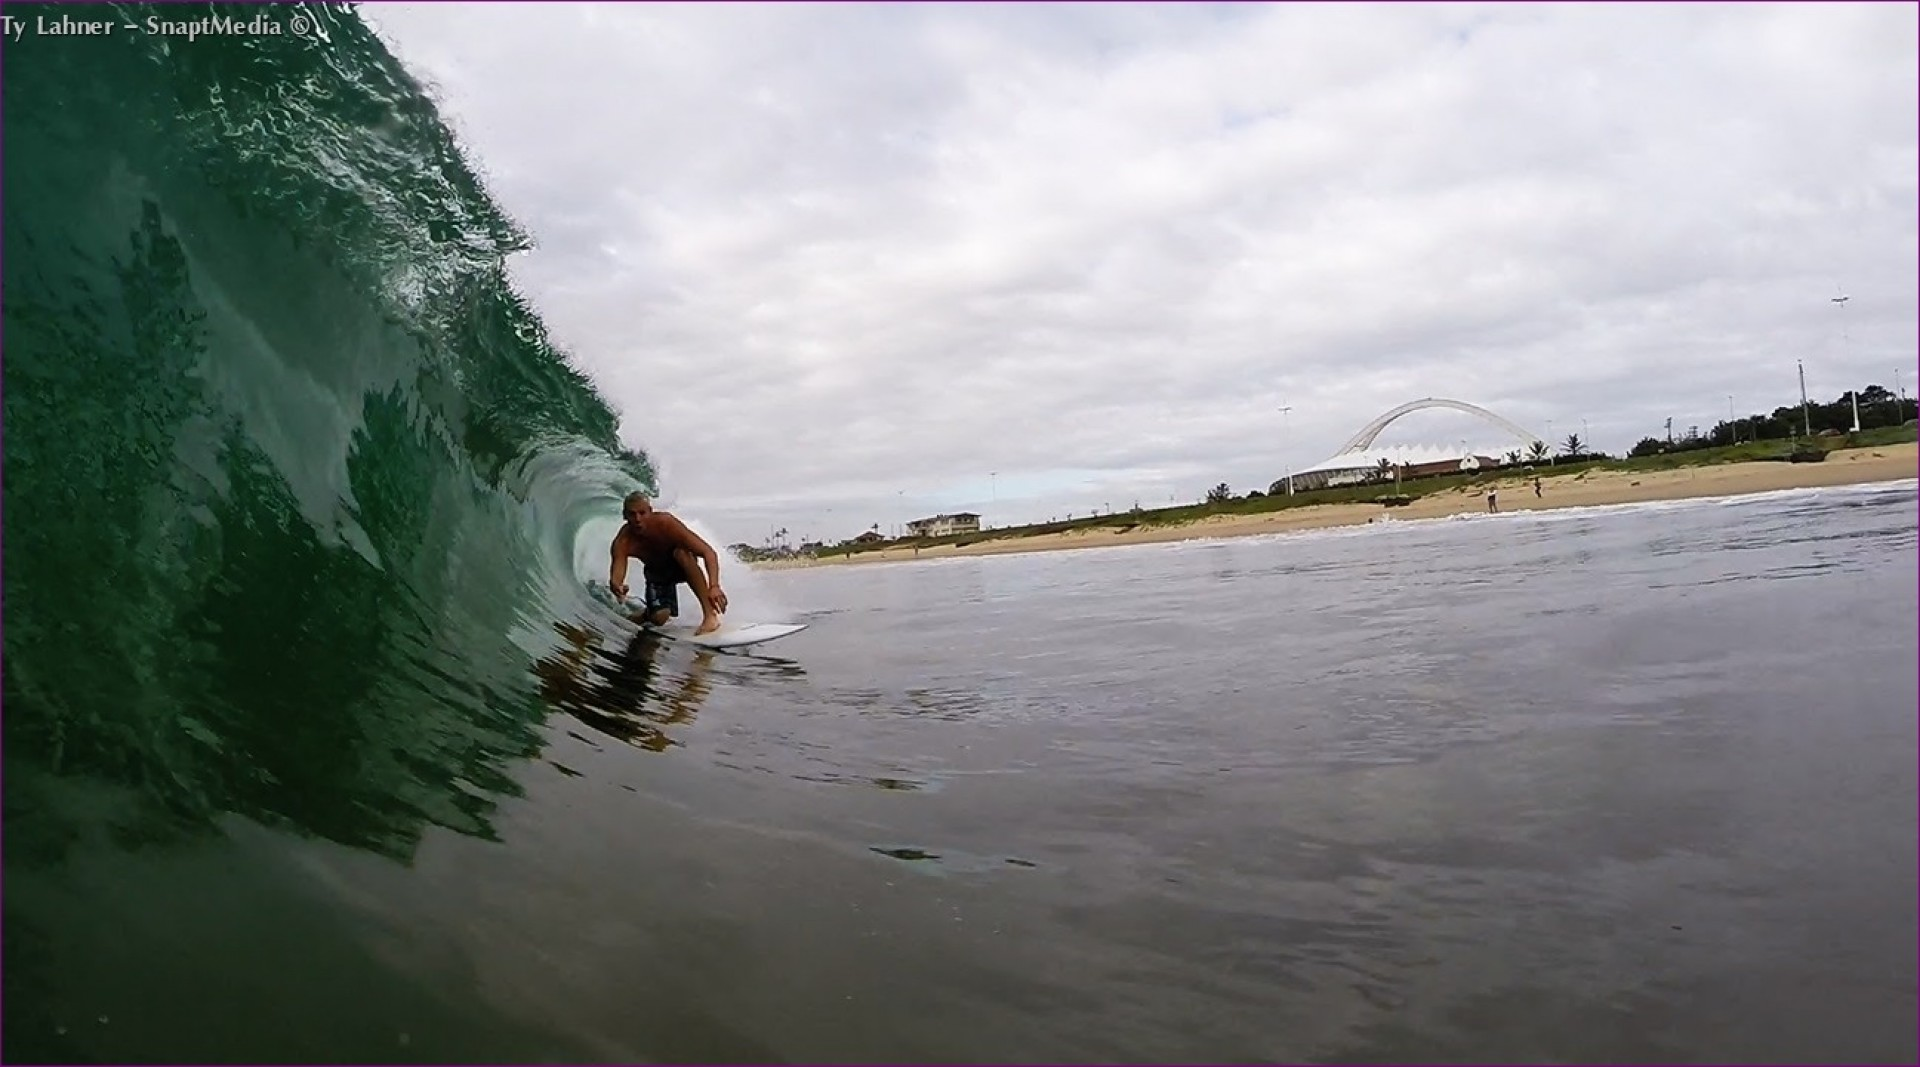 Ty Lahner's photo of Durban